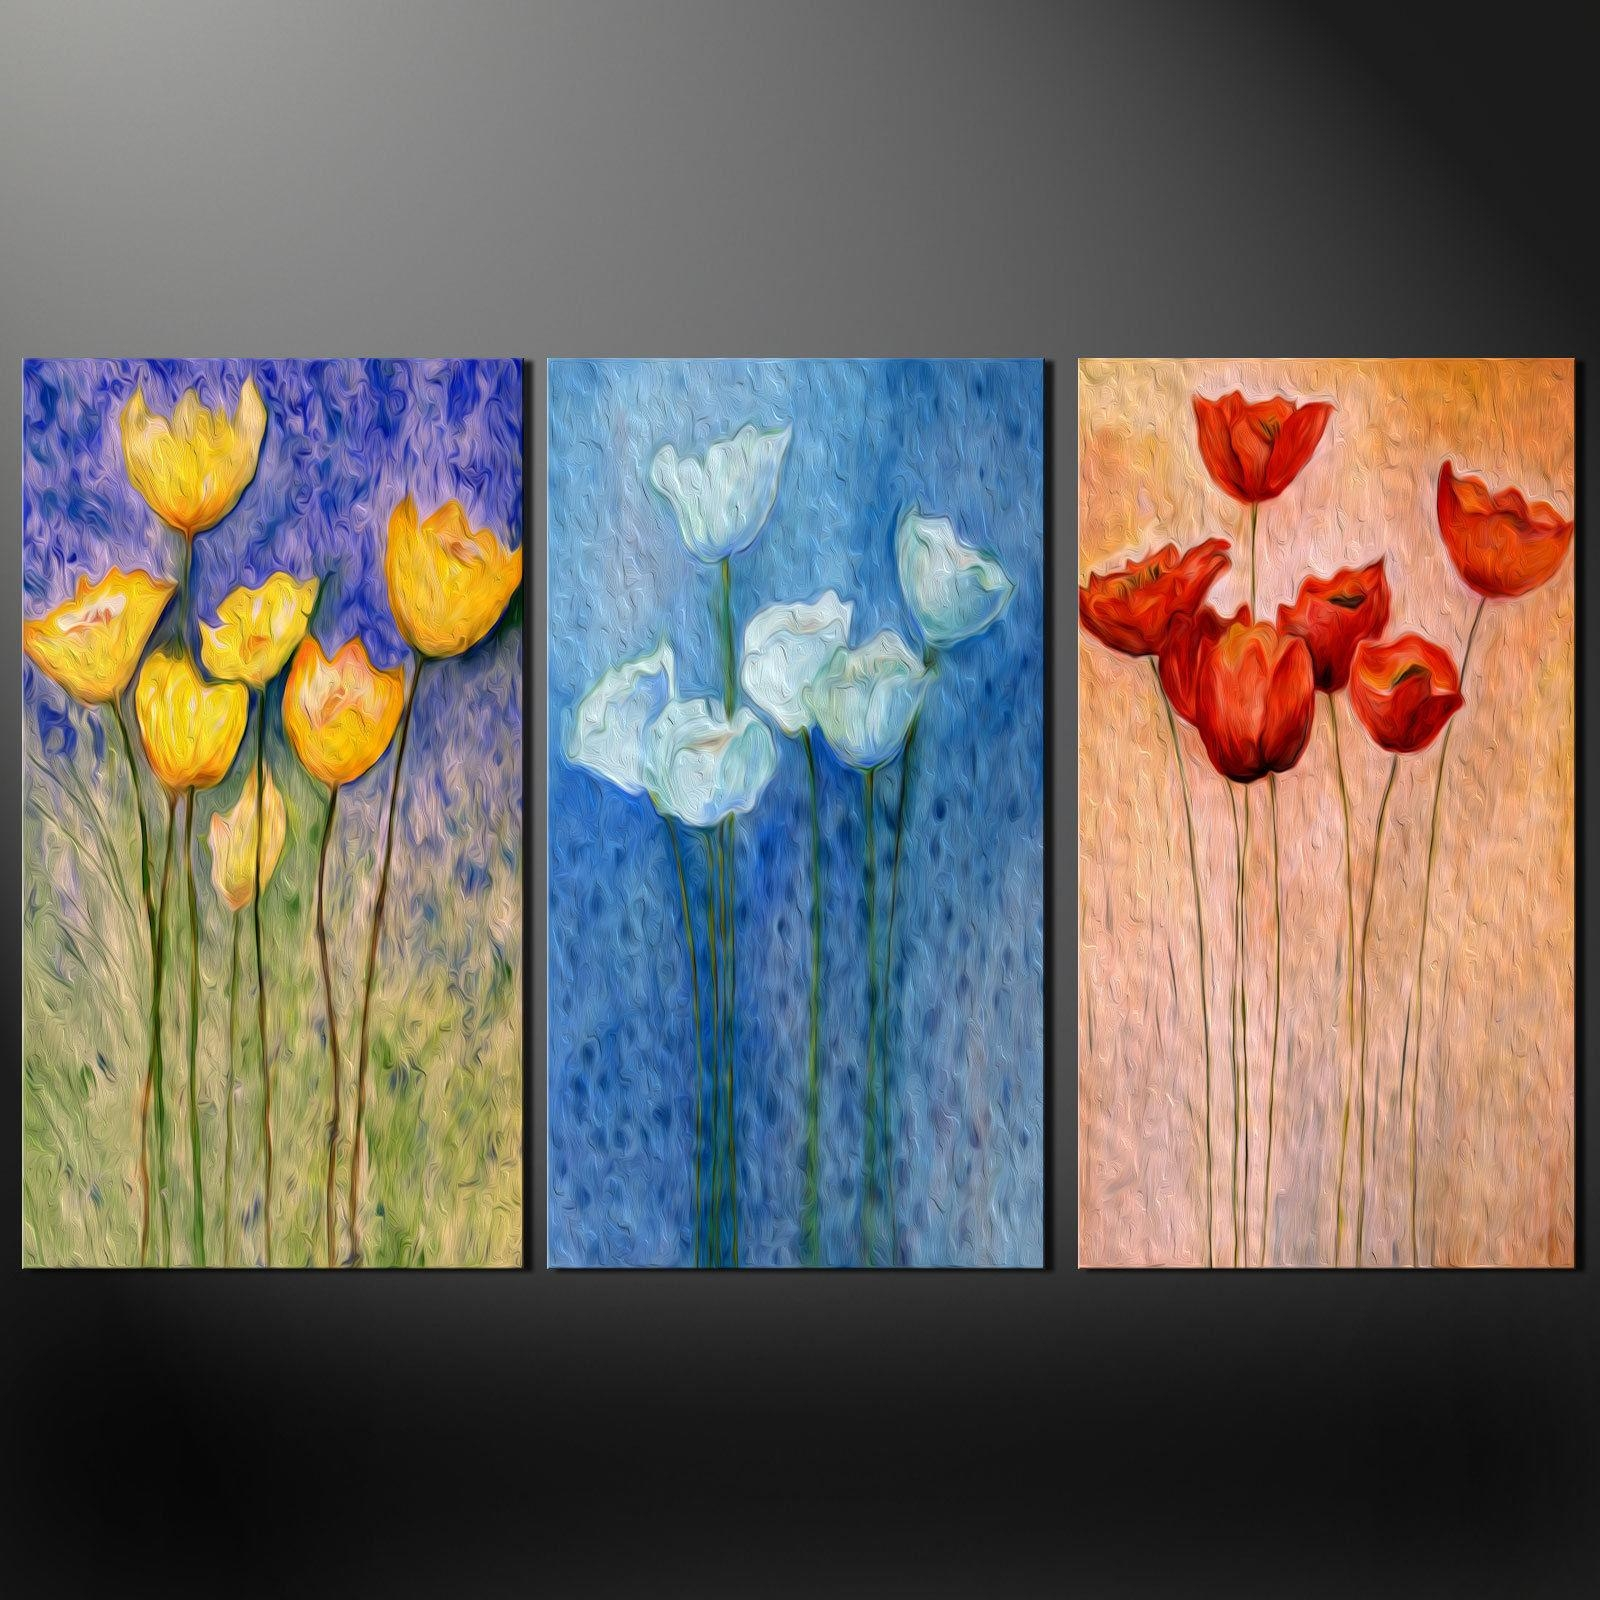 Floral Design Poppies 3 Panels Split Canvas Wall Art Pictures Inside Split Wall Art (Image 4 of 20)